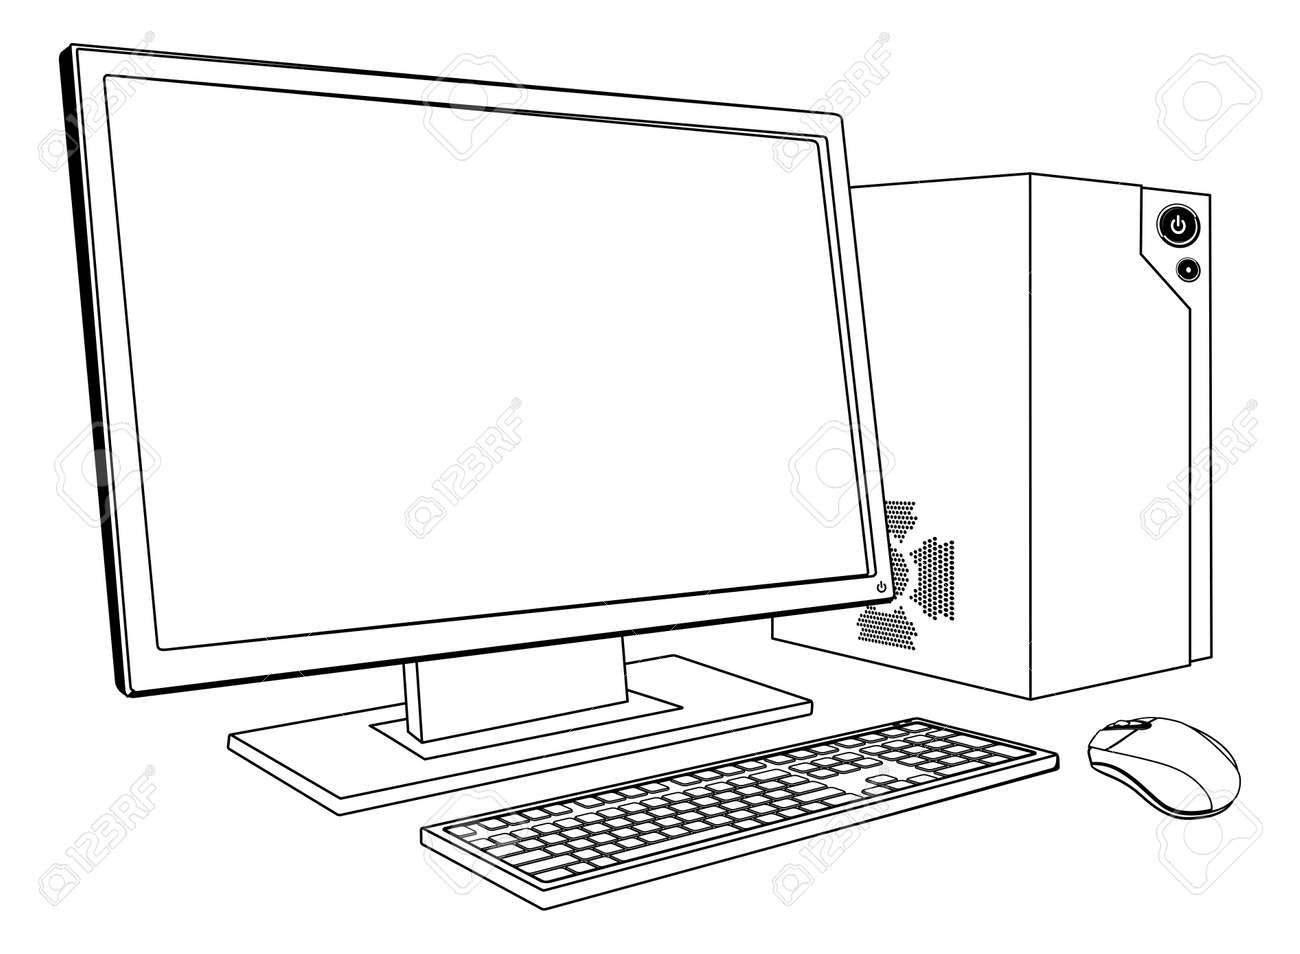 A black and white illustration of desktop PC computer workstation. Monitor, mouse keyboard and tower - 15537685